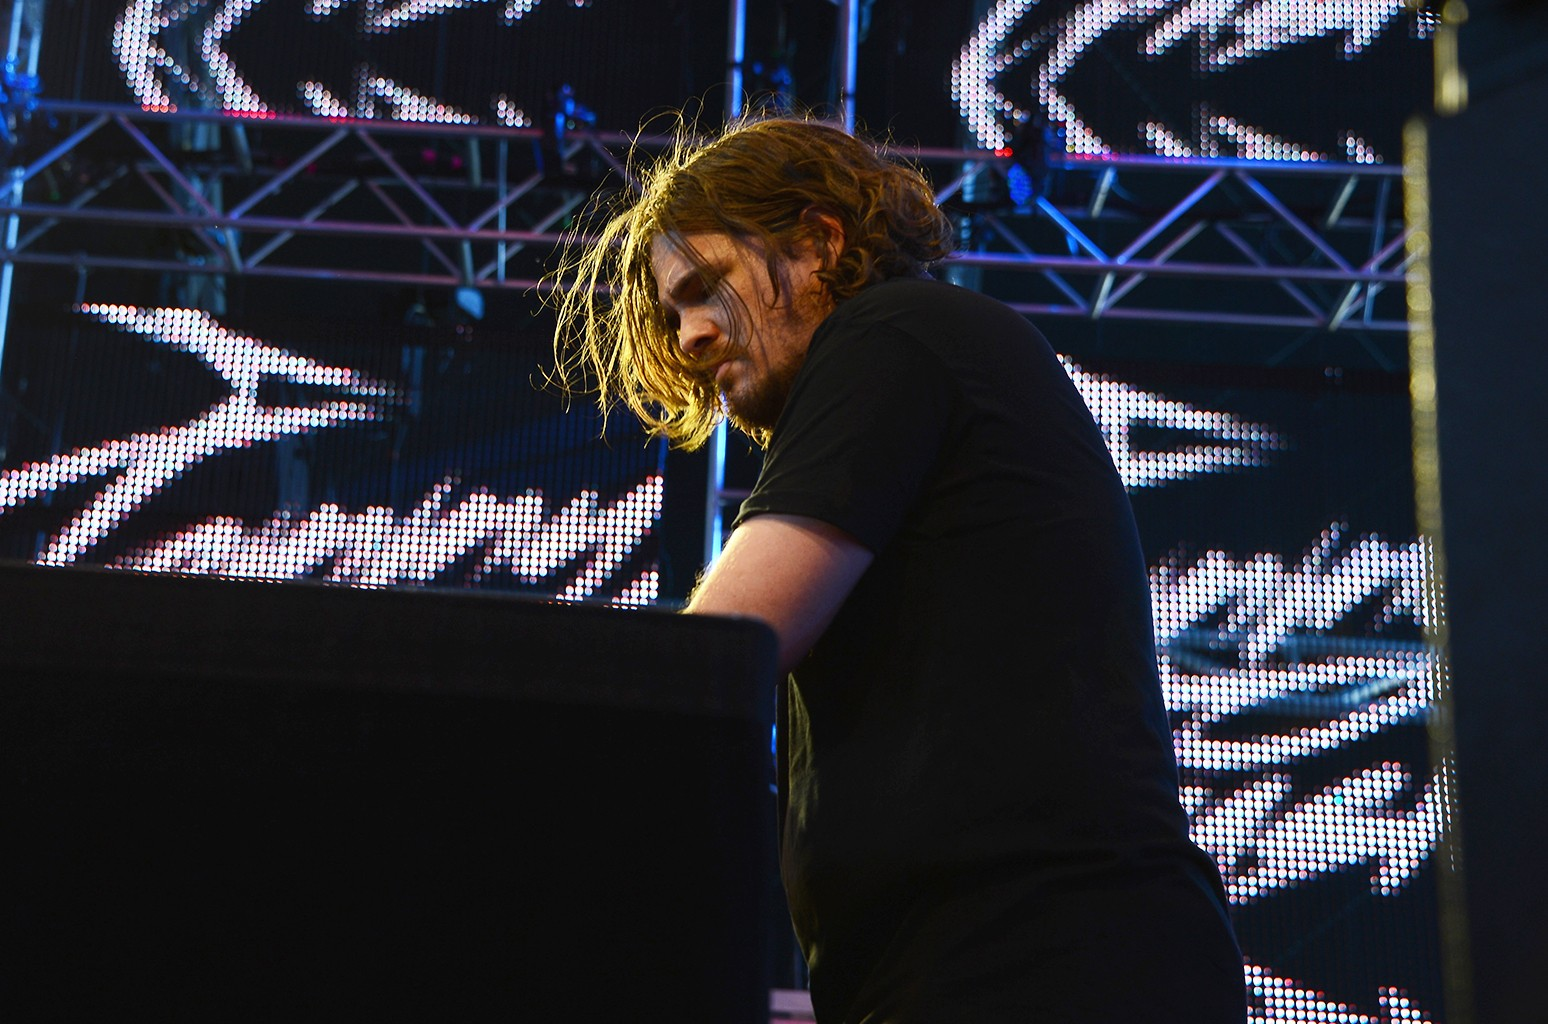 Tommy Trash in 2013